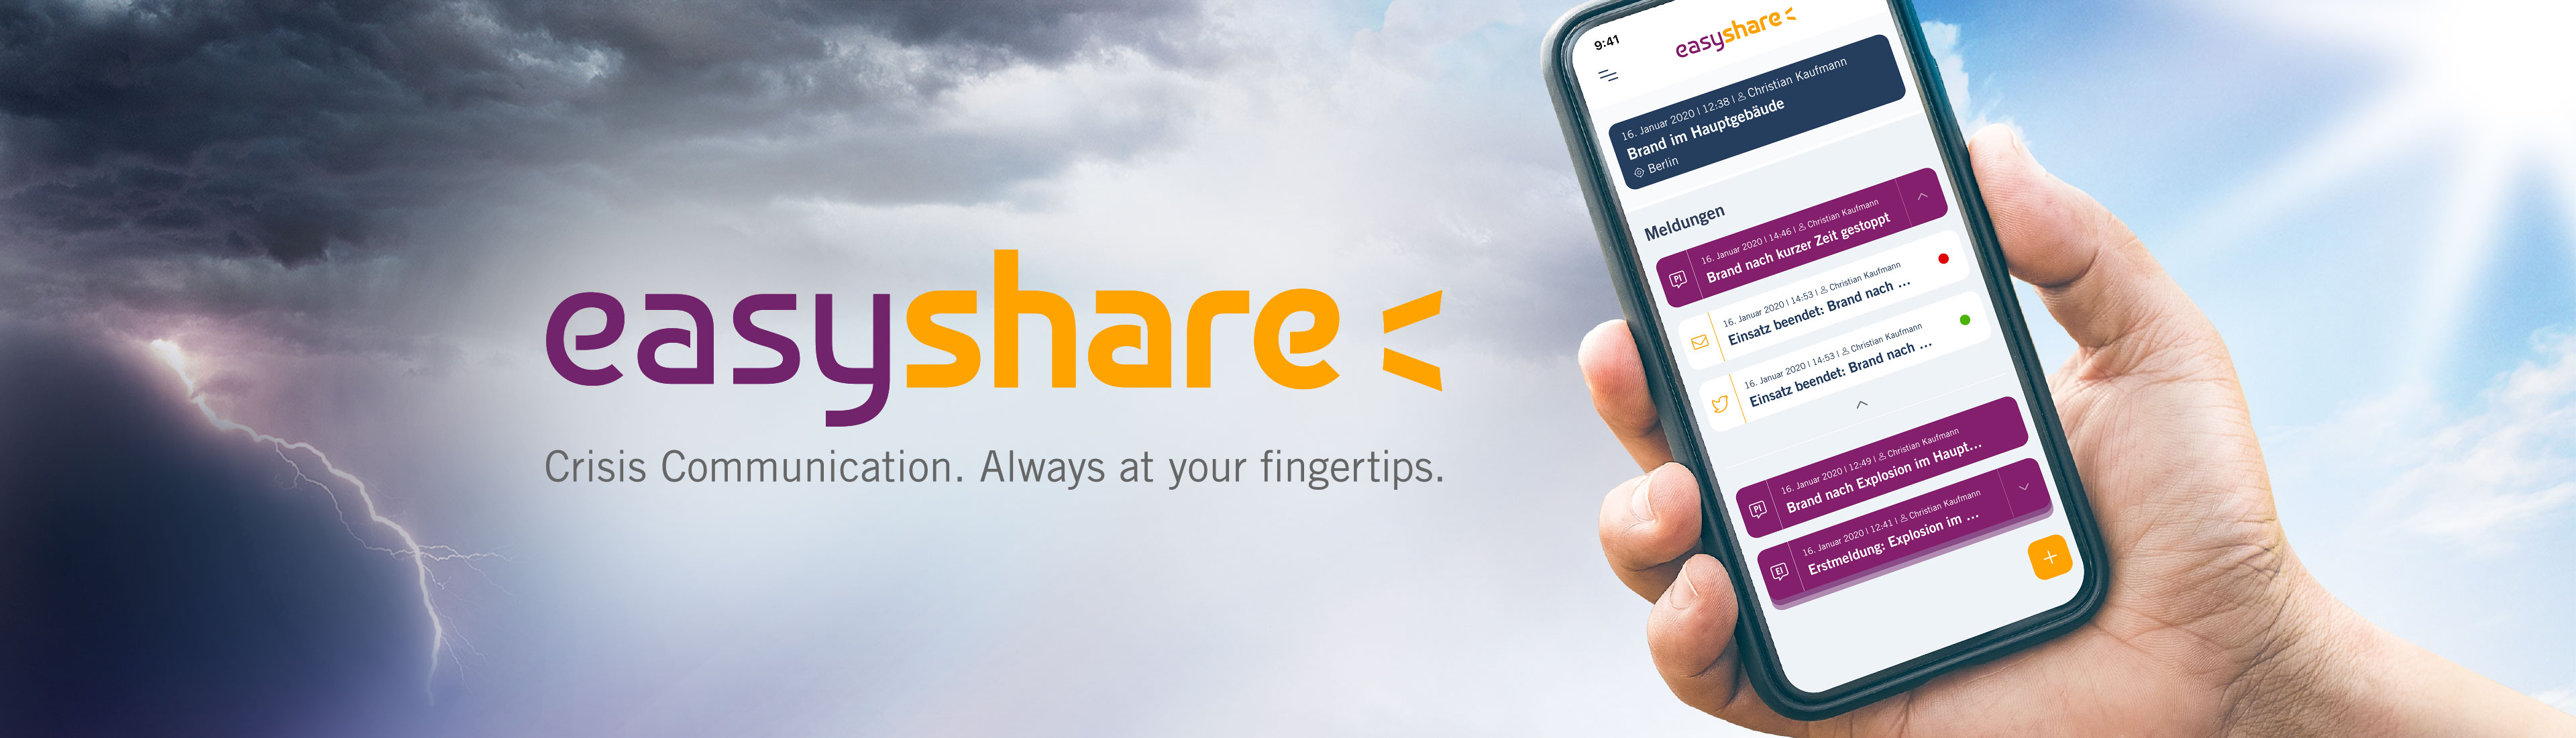 easyshare – Crisis Communication. Always at your fingertips.